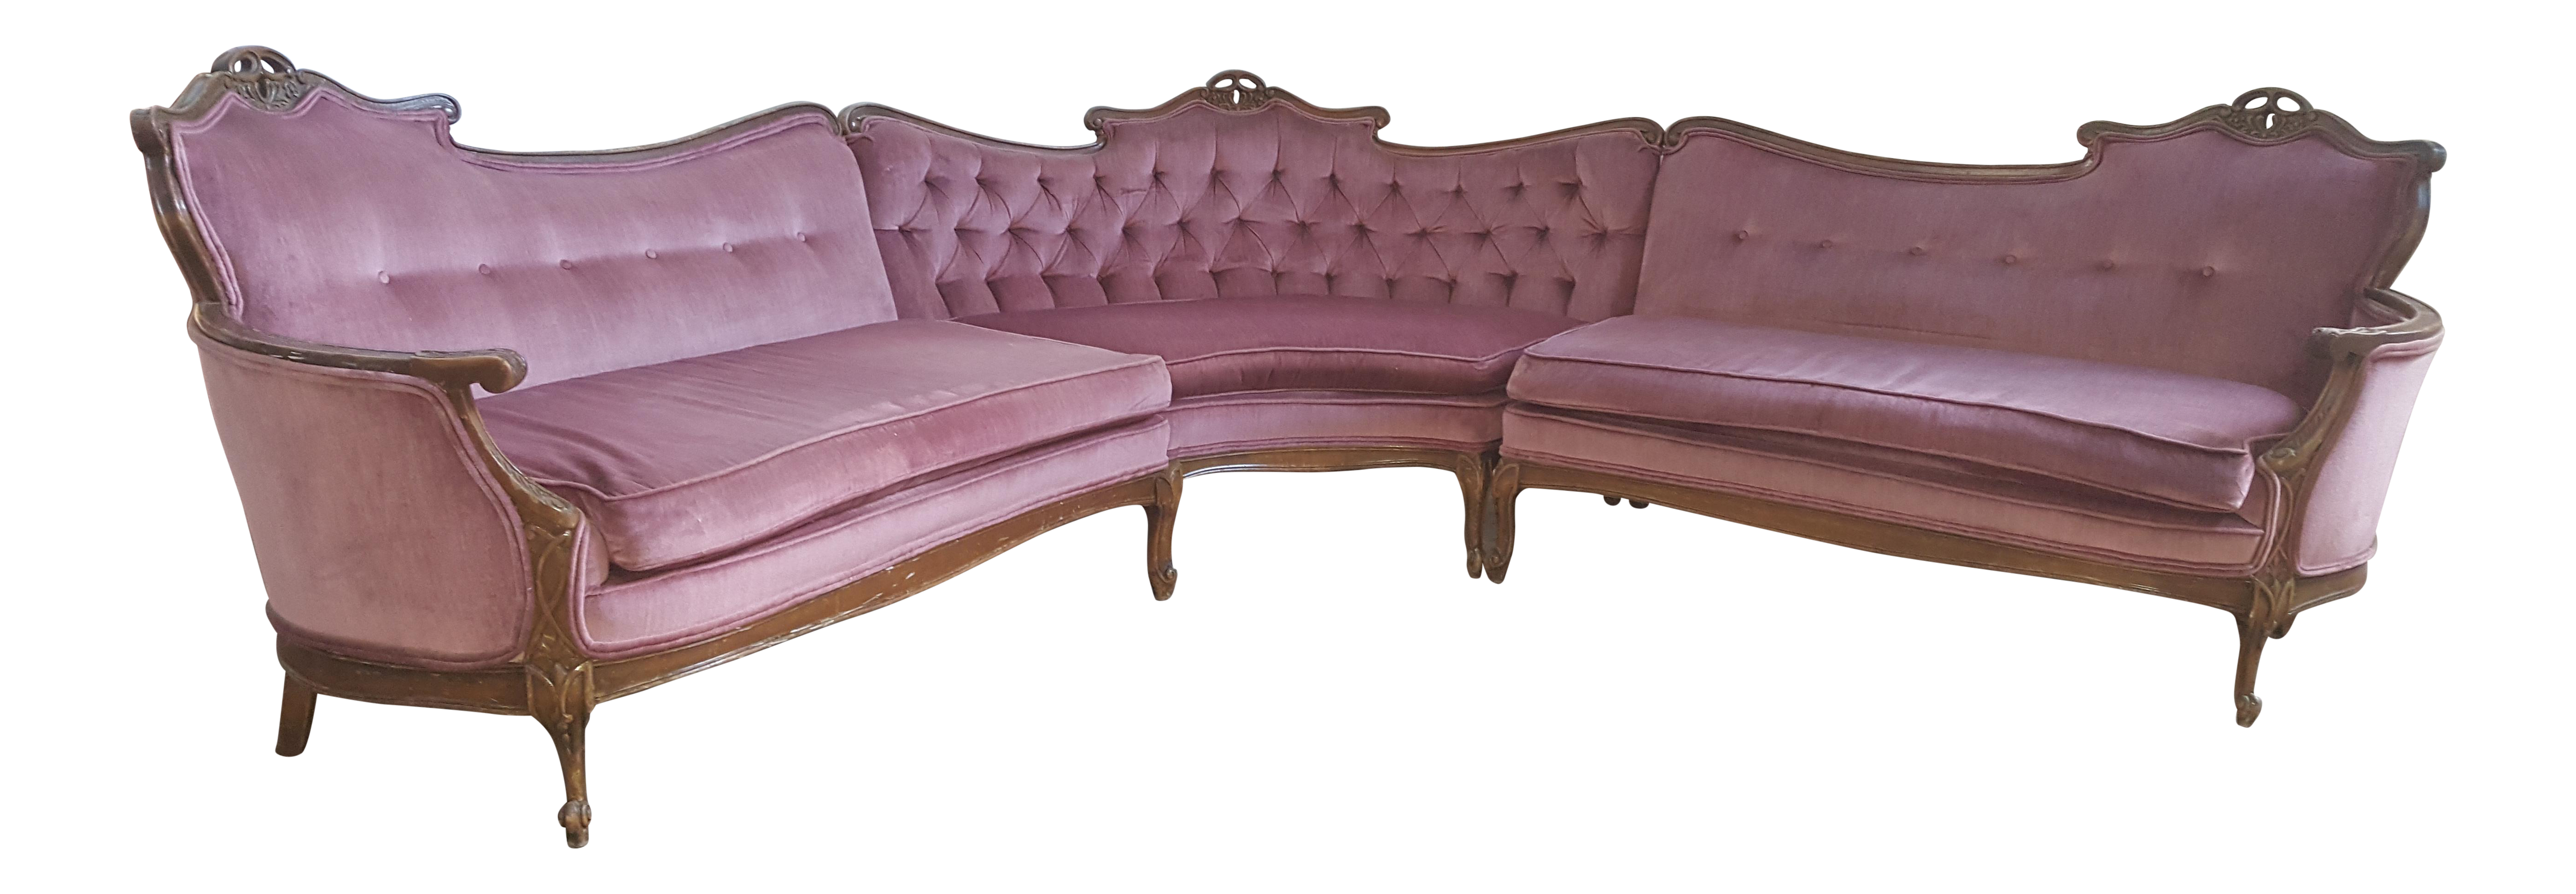 Vintage French Provincial Pink Velvet Sectional Sofa